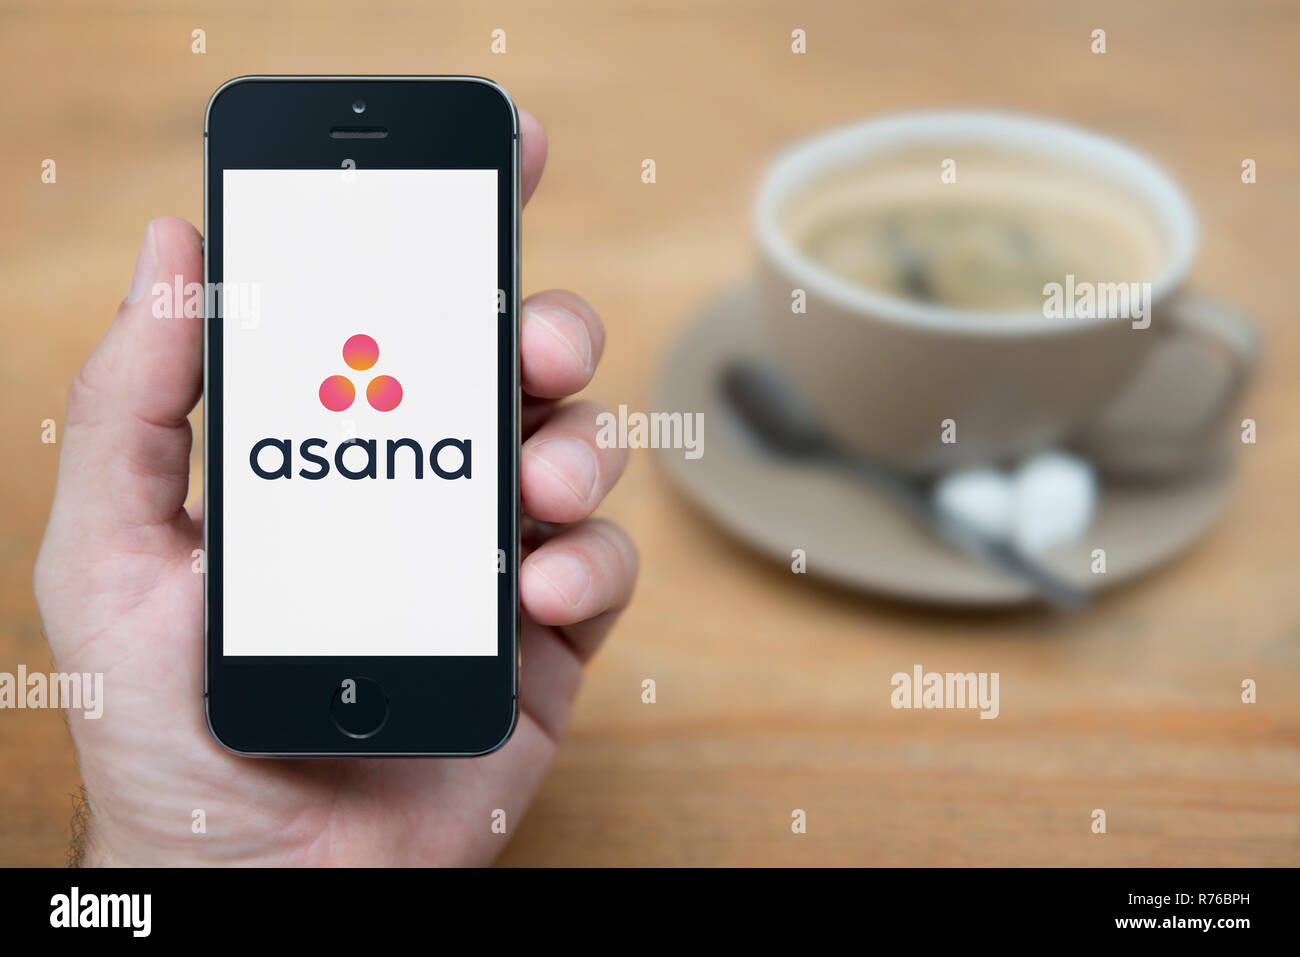 A man looks at his iPhone which displays the Asana logo (Editorial use only). - Stock Image